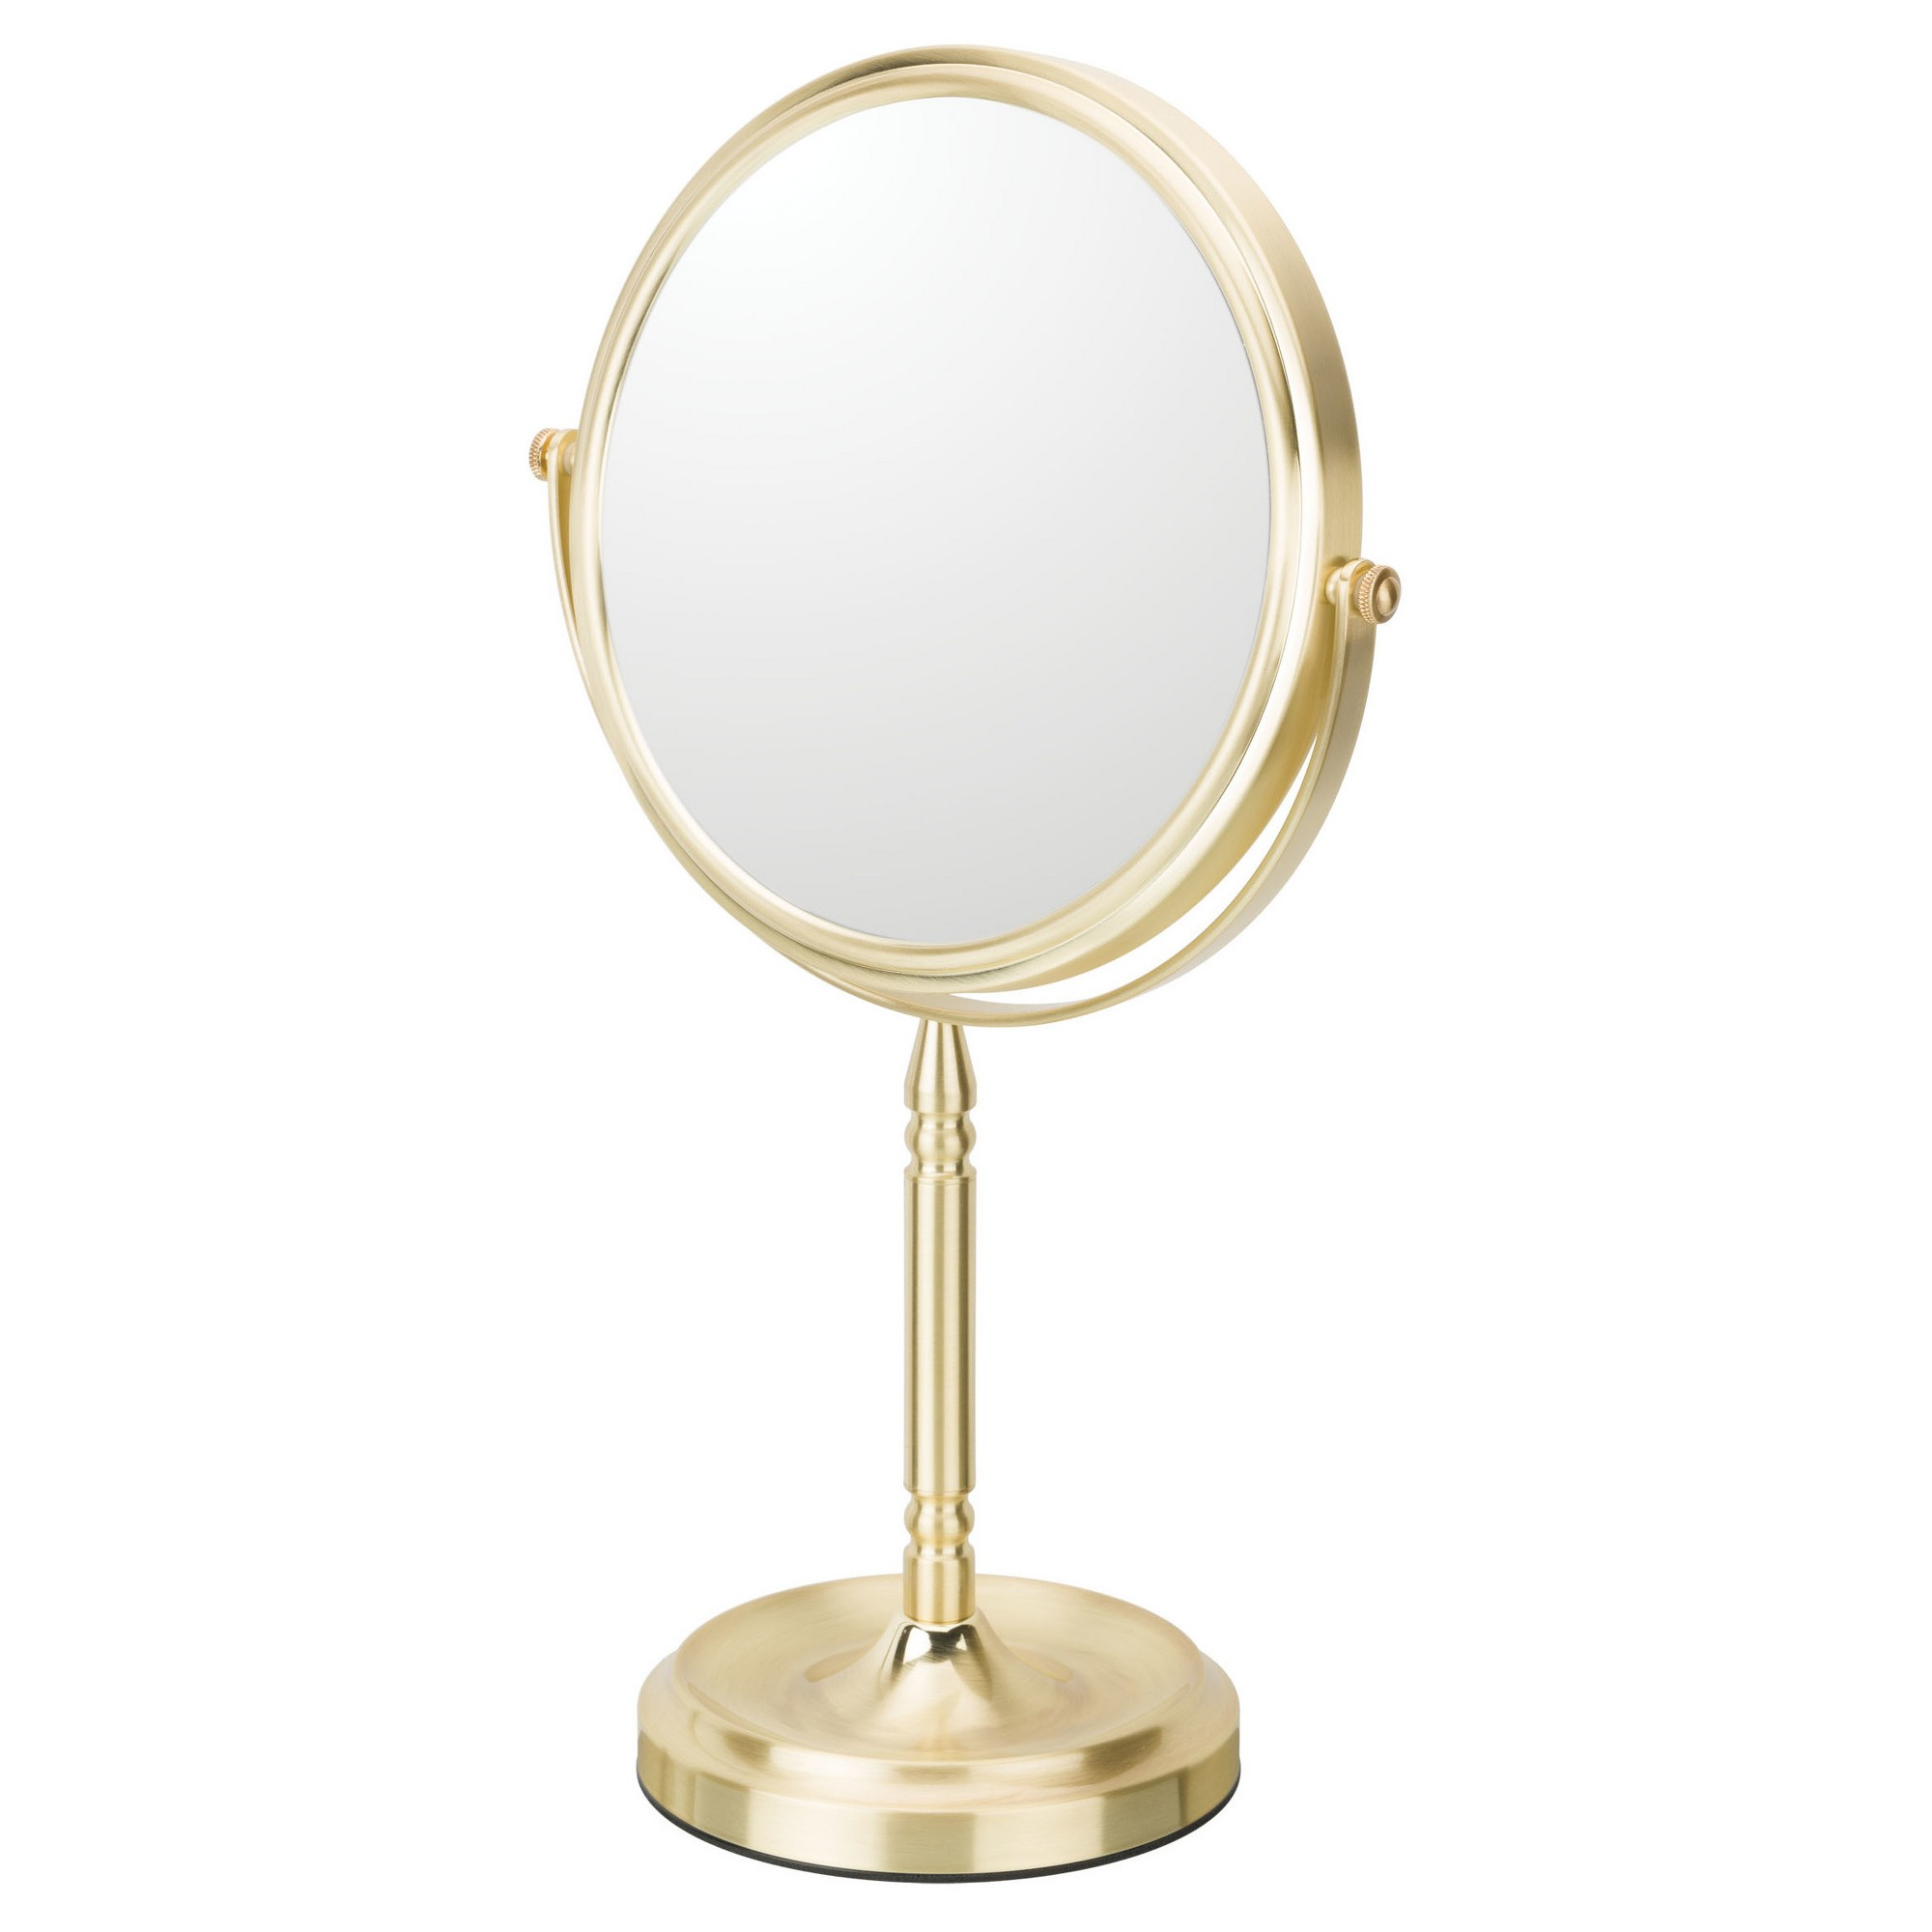 Recessed Base Double Sided Free Standing Magnified Makeup